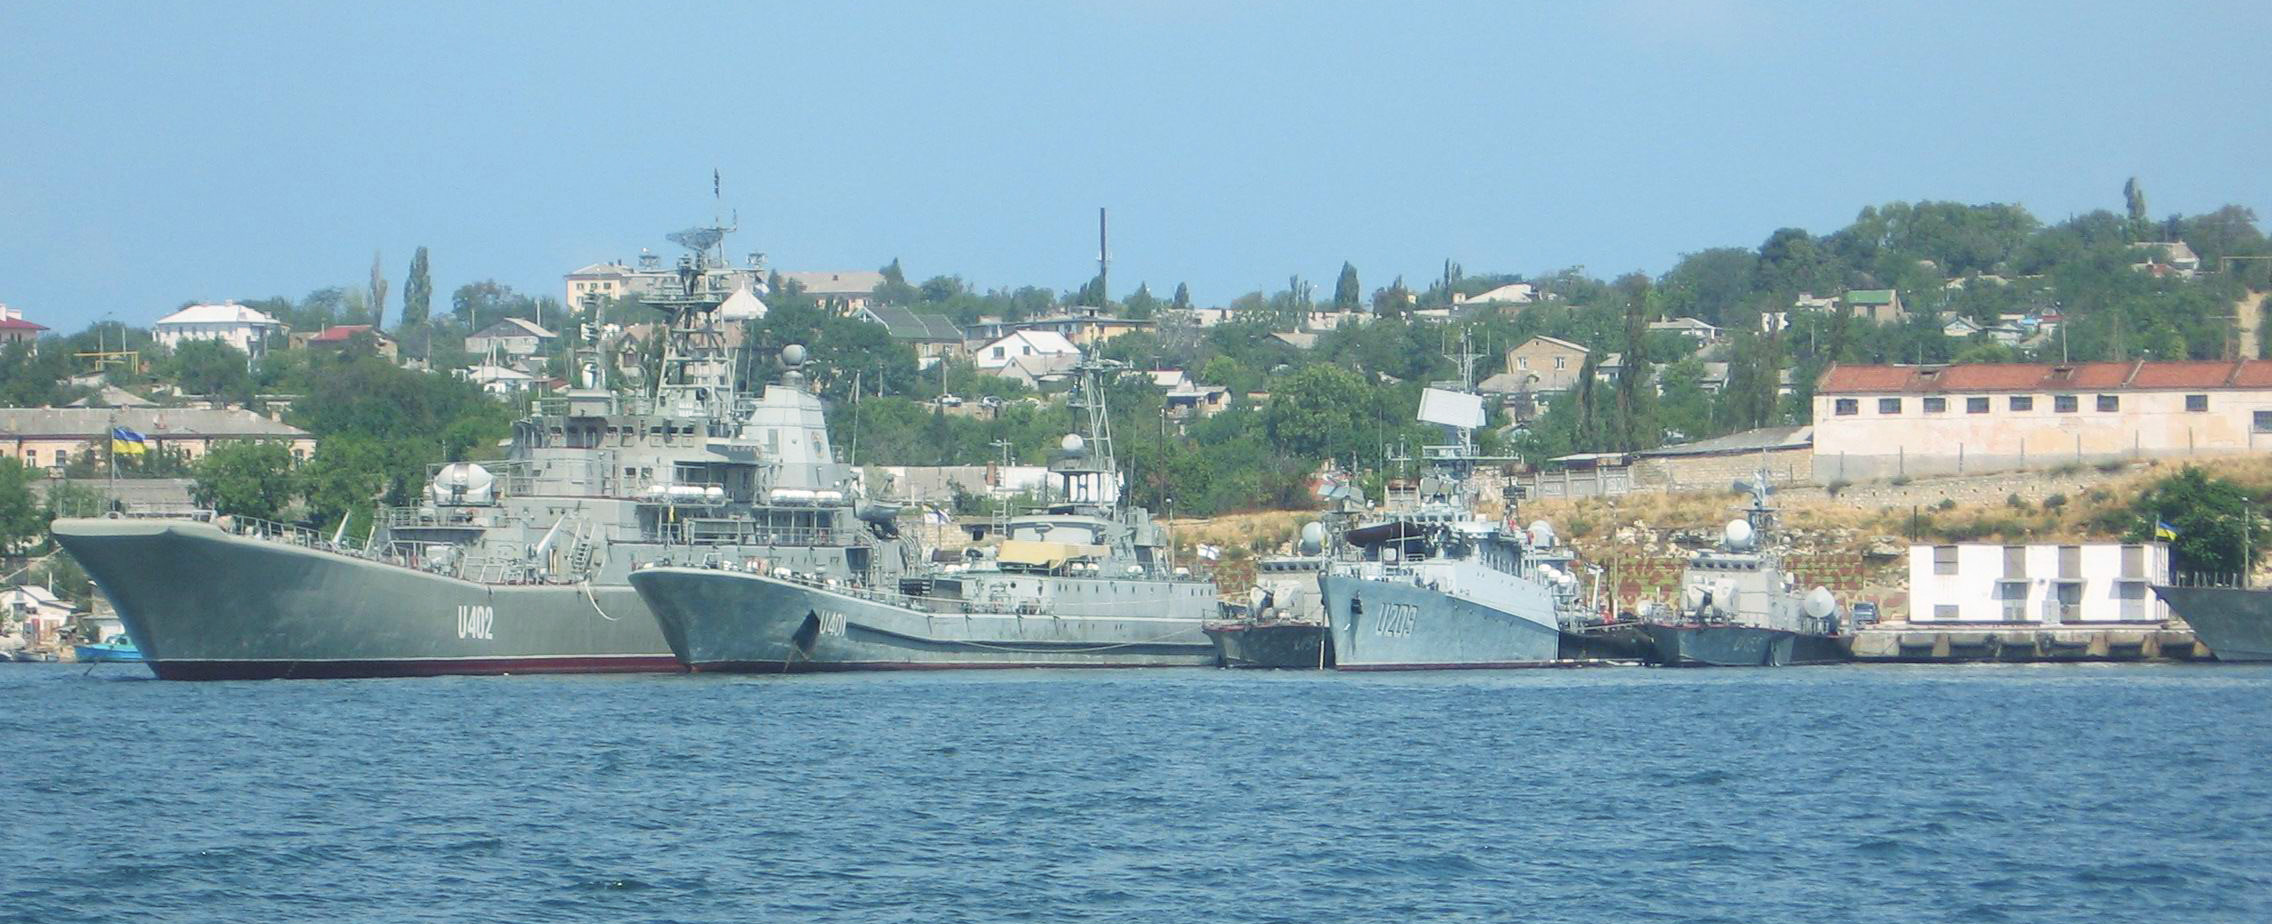 File Ships Of Ukrainian Navy In Sevastopol 2007 Jpg